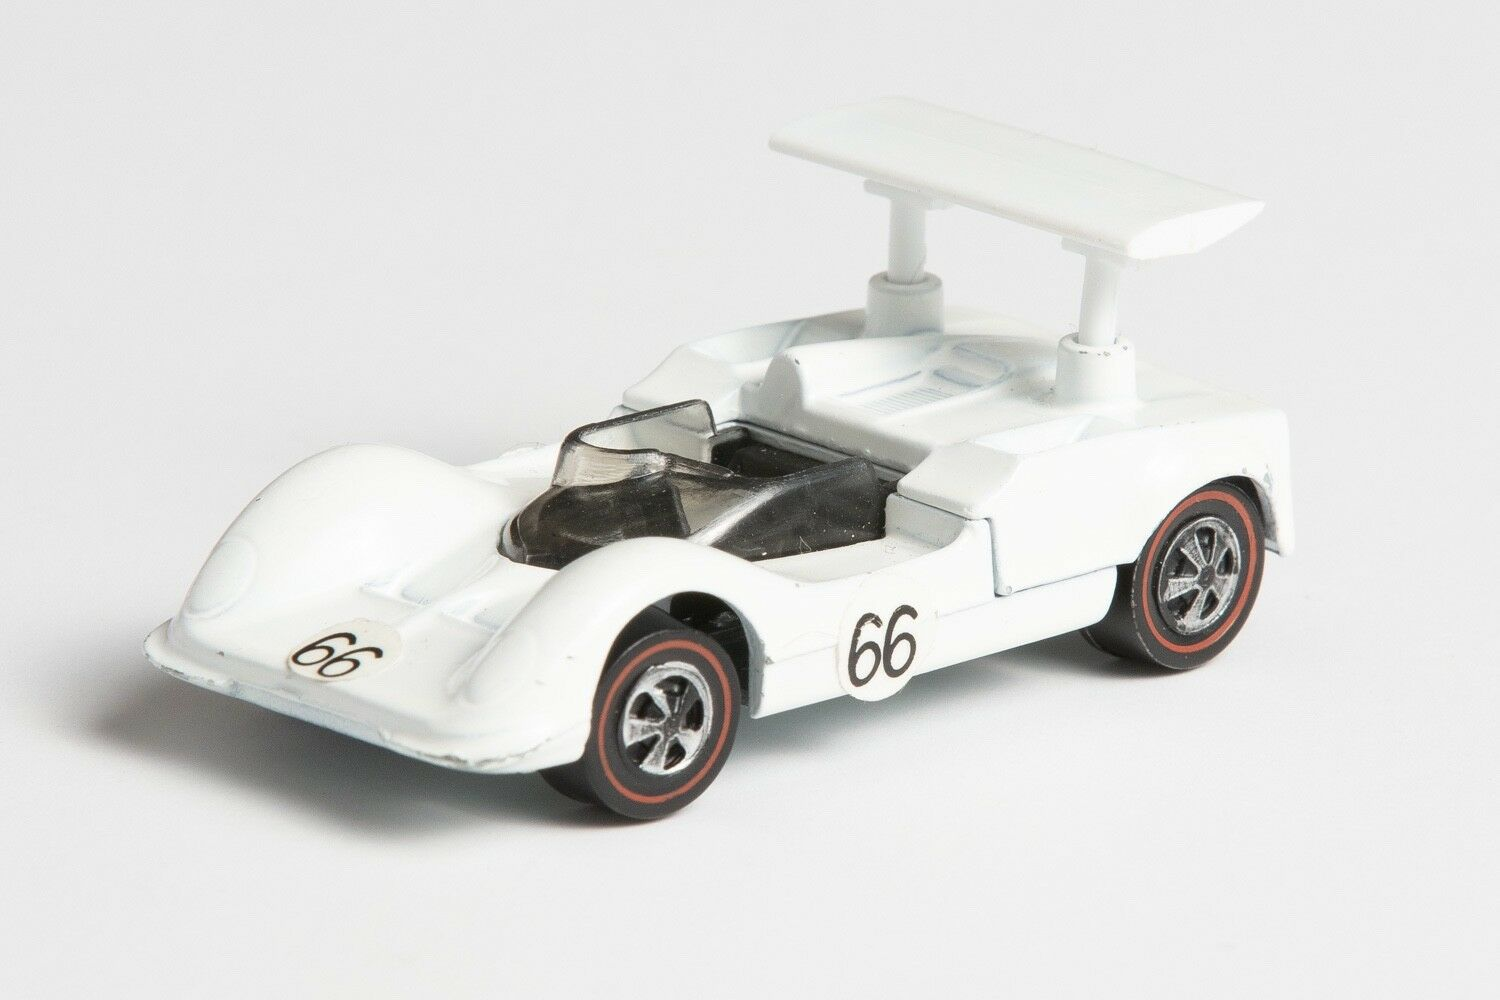 Hot Wheels 1968 Chaparral 26